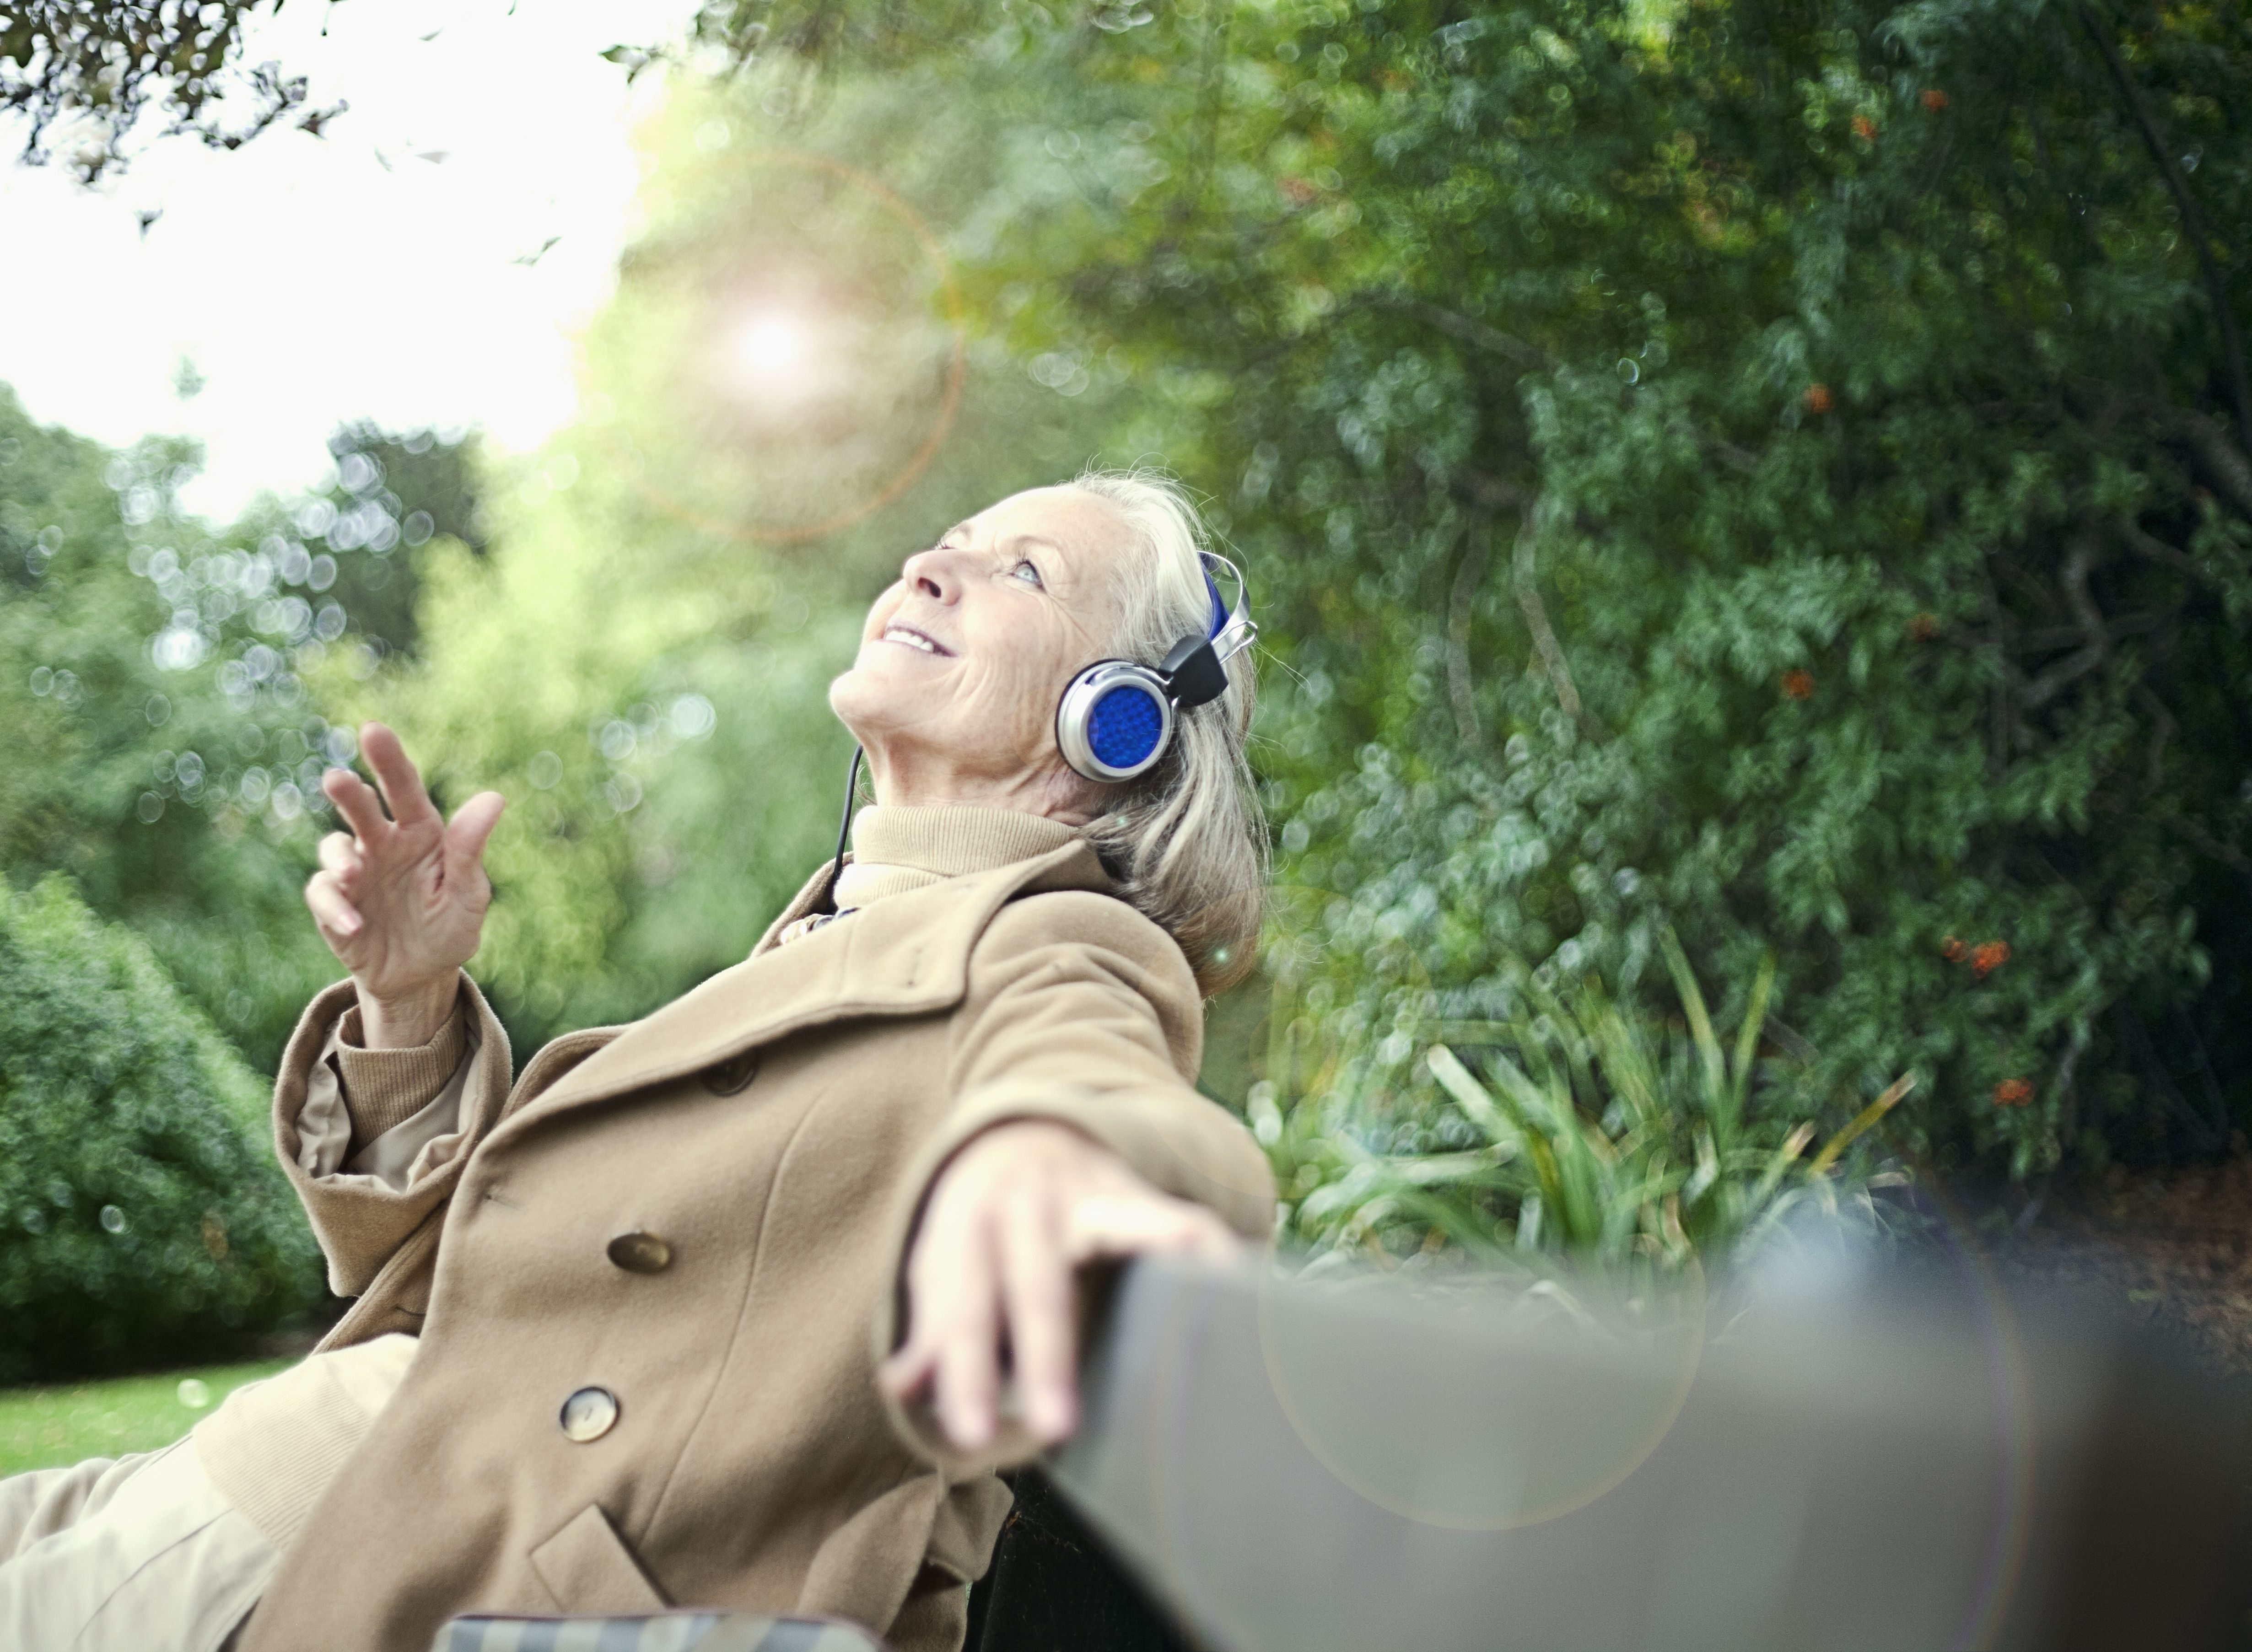 The Surprising Psychological Benefits of Music